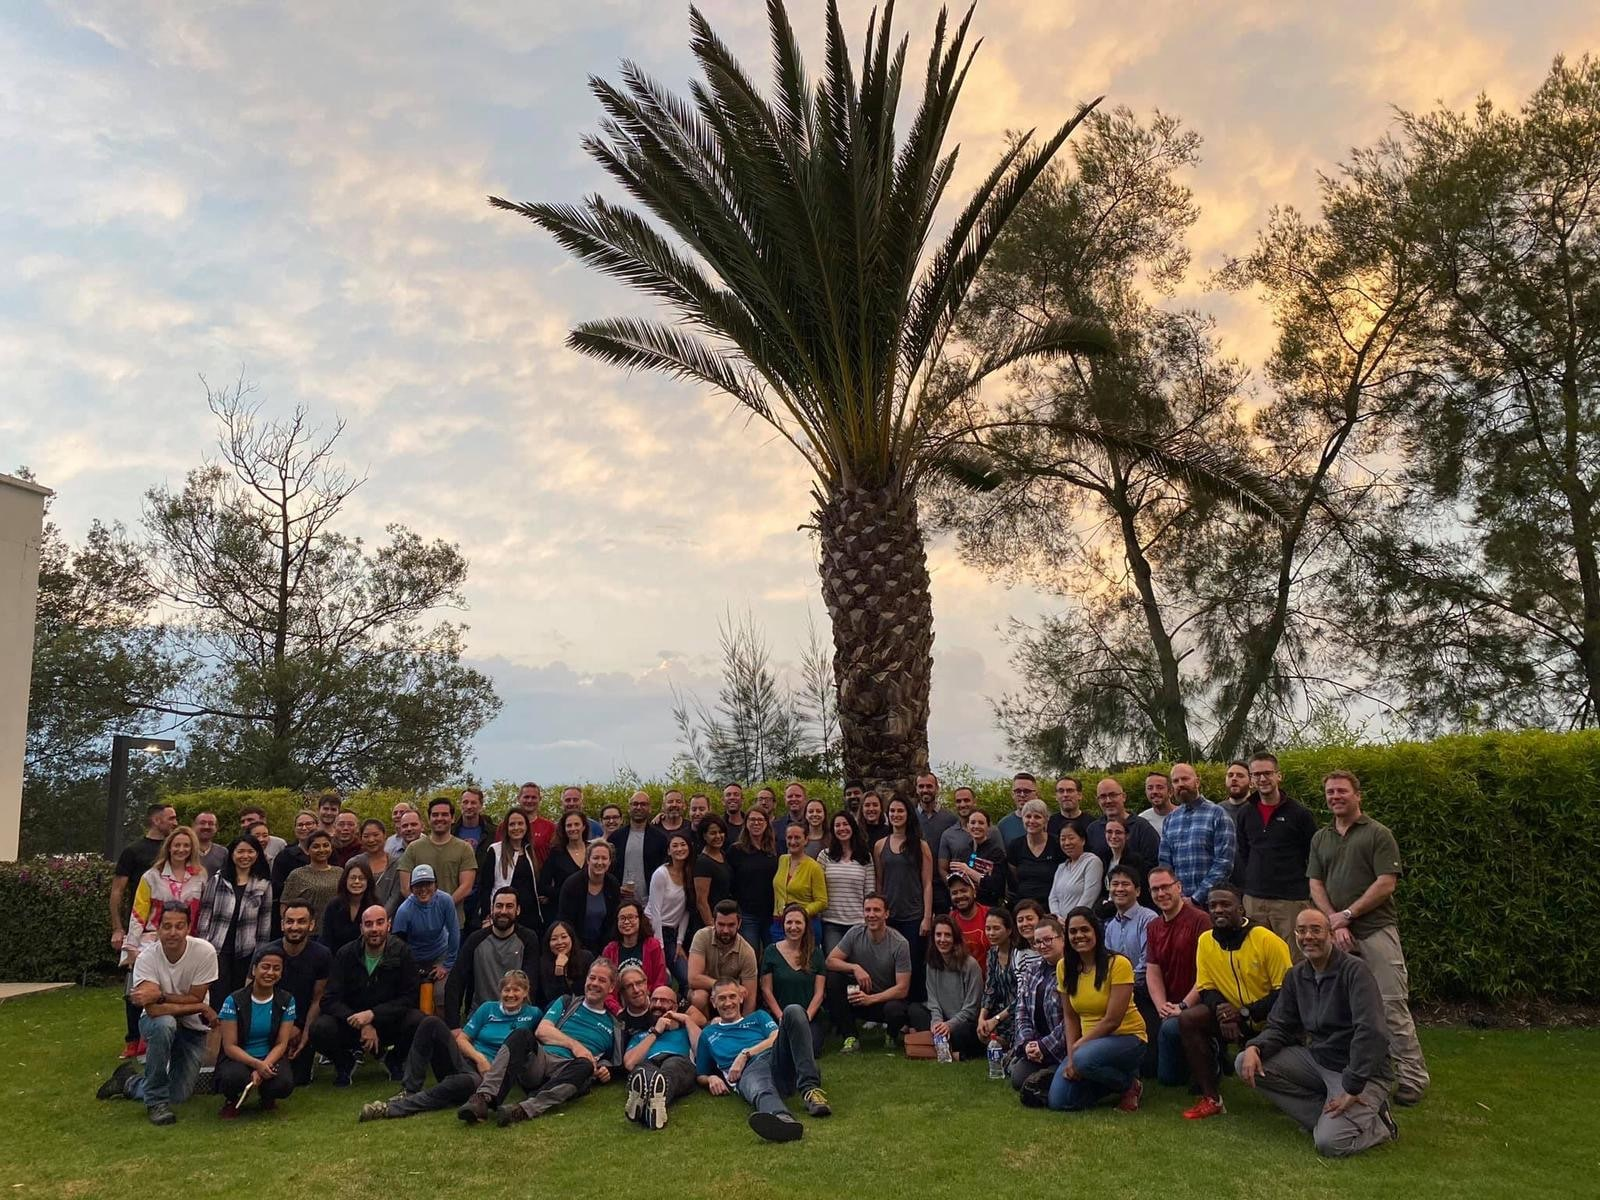 A group of about 80 people pose for a group photo in front of a palm tree.